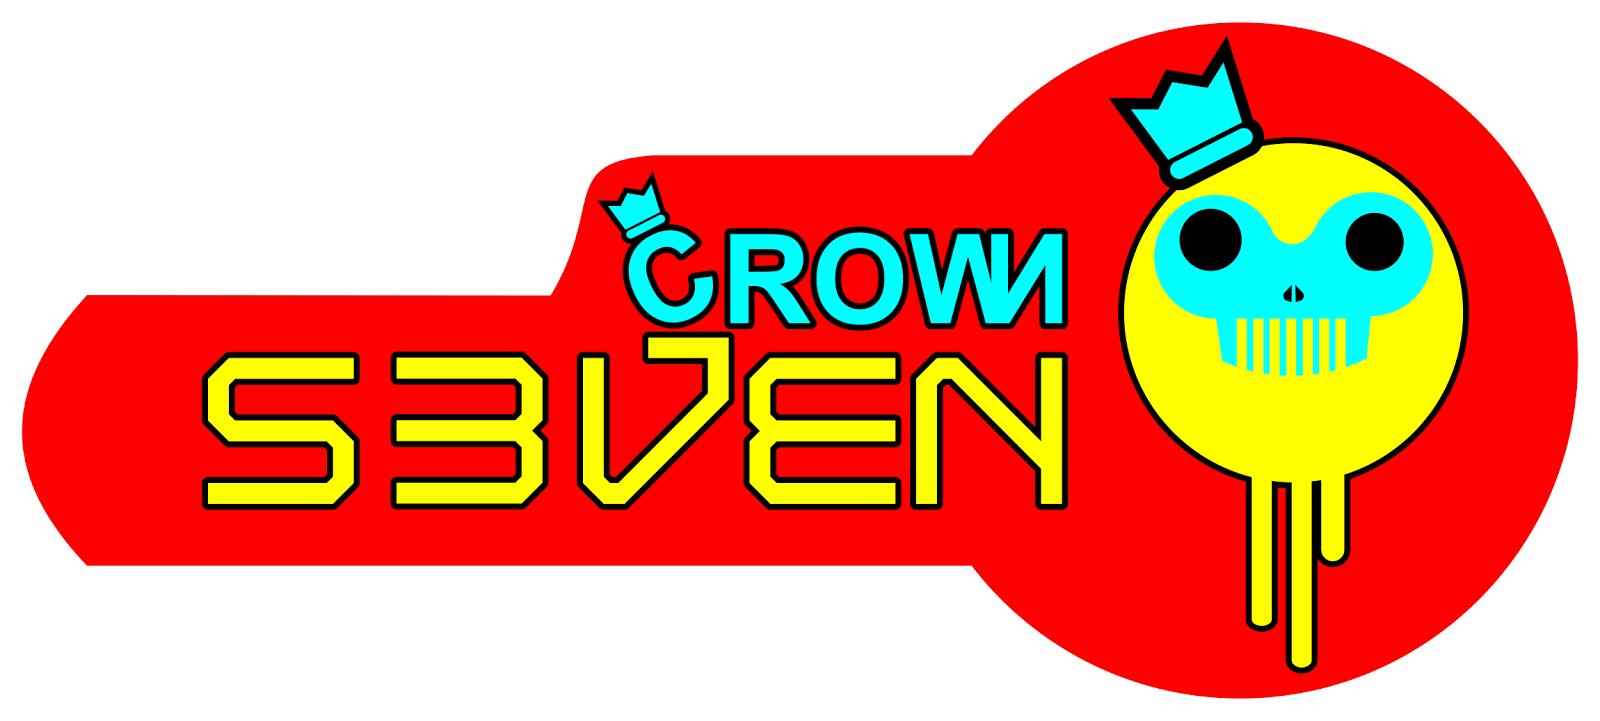 kaos distro keren logo seven crown distro 7588